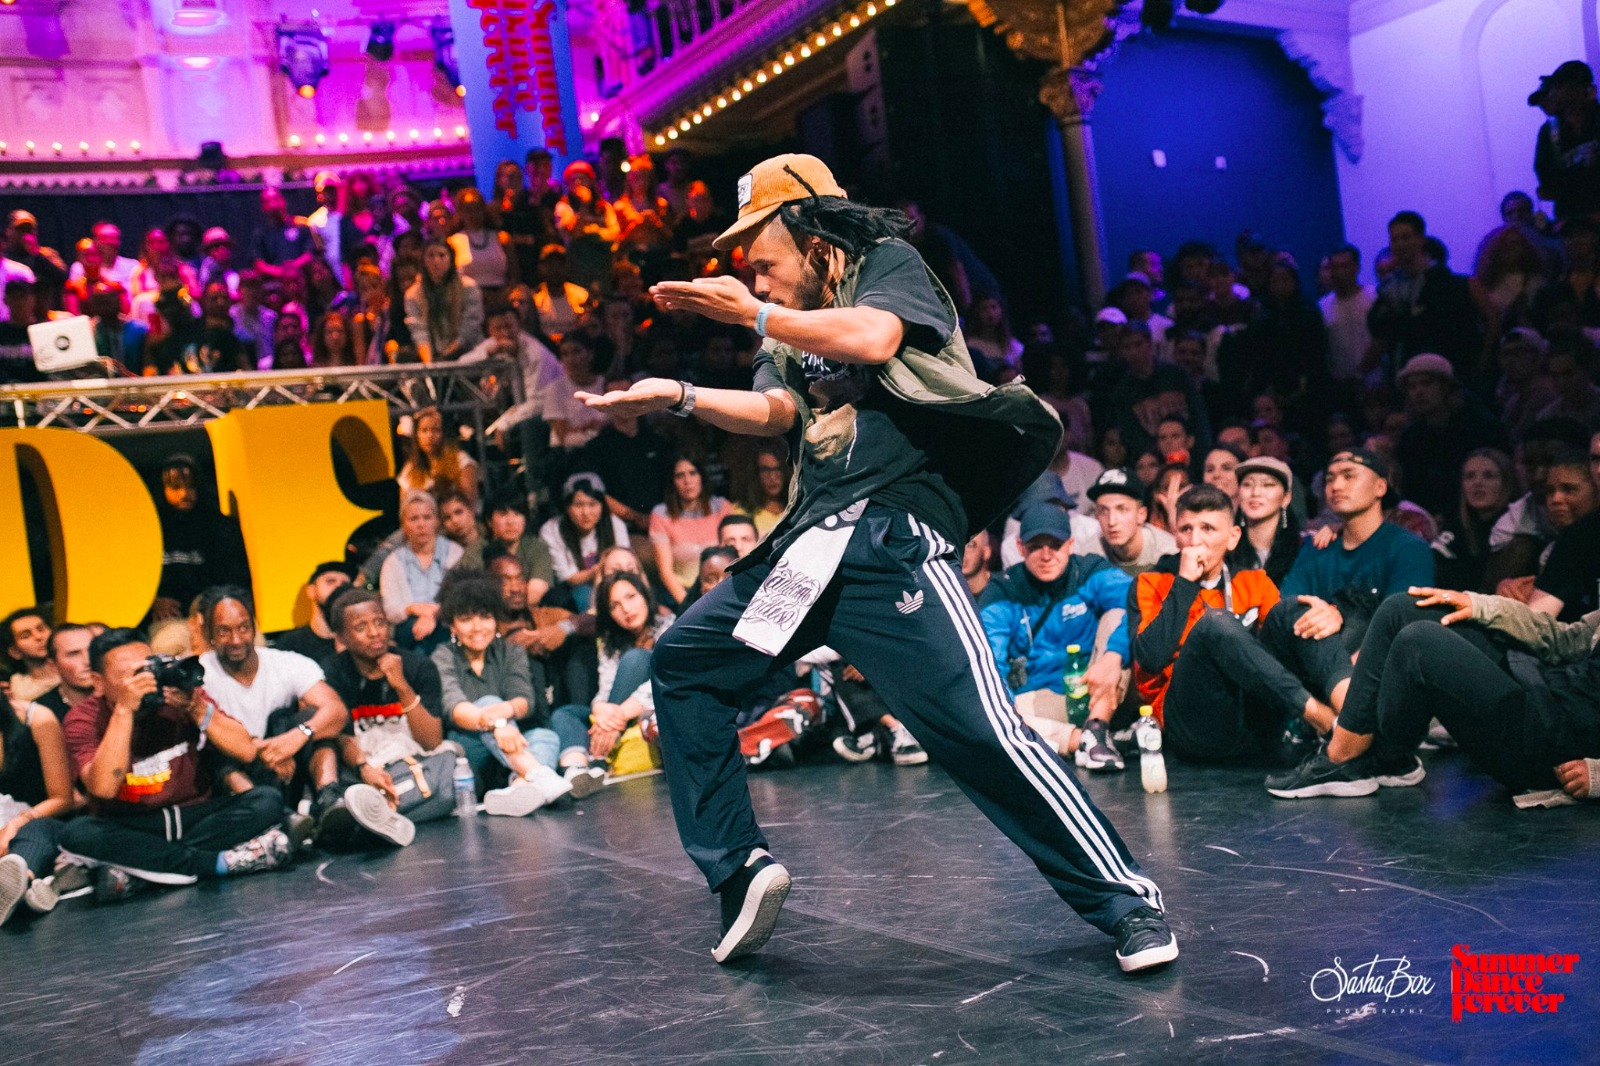 Extra! Extra! Batalla will be joining Hiphop Forever